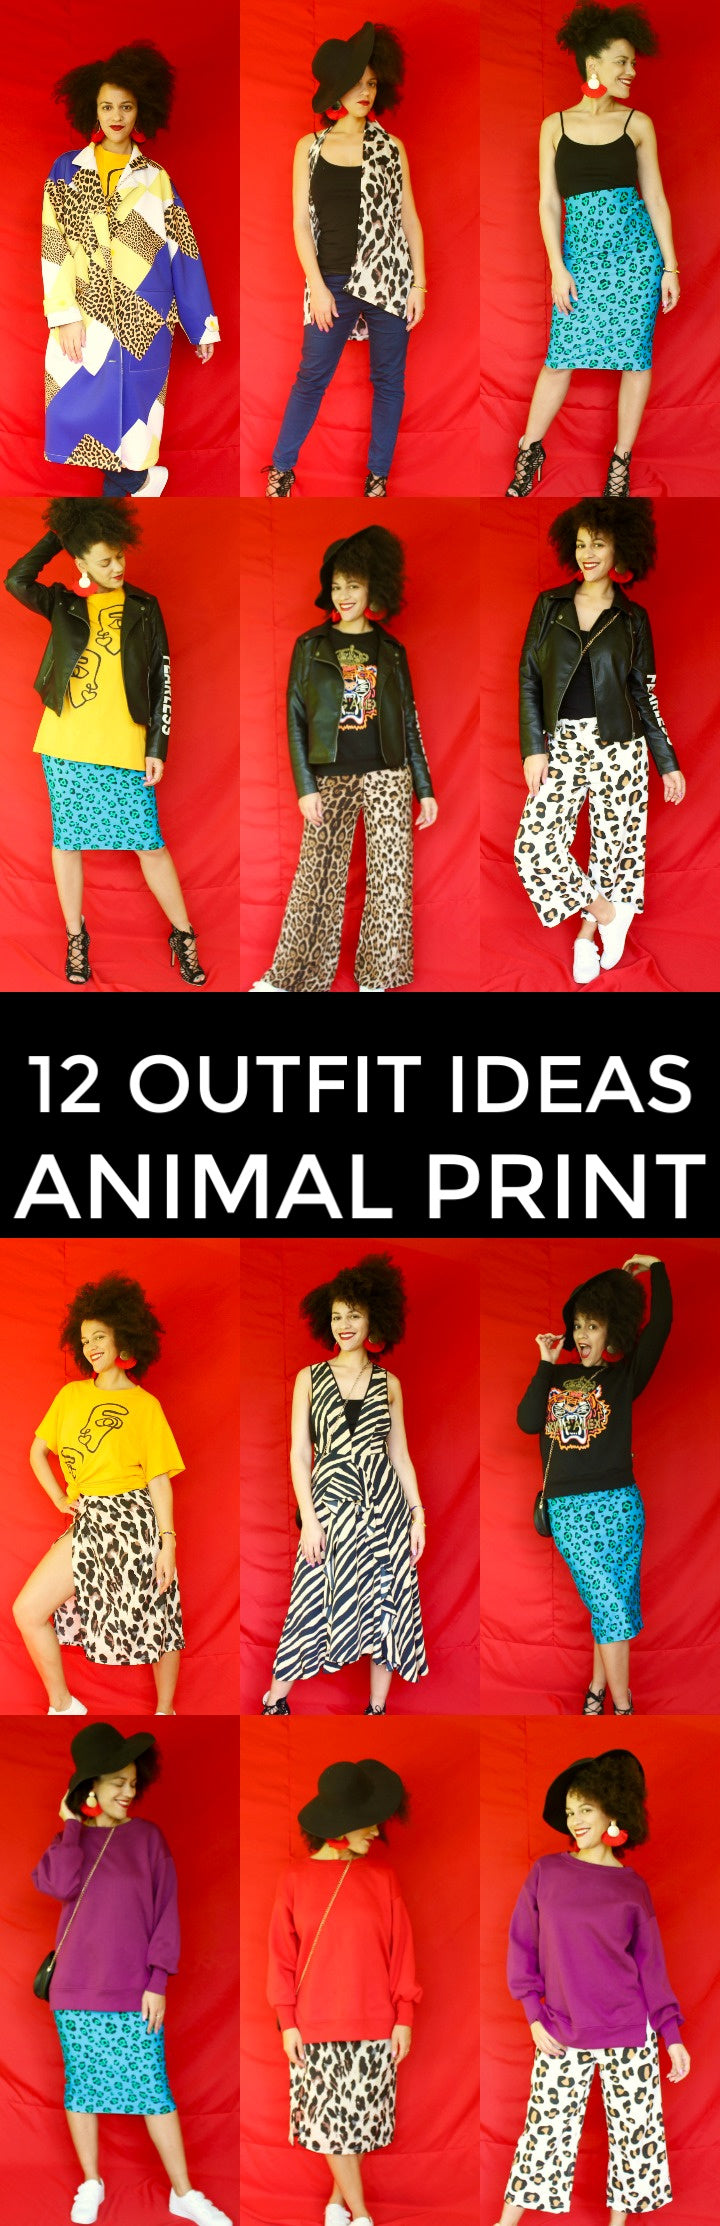 12 Colorful Outfit Ideas with Animal Print | Lookbook 2018 | Capsule Wardrobe